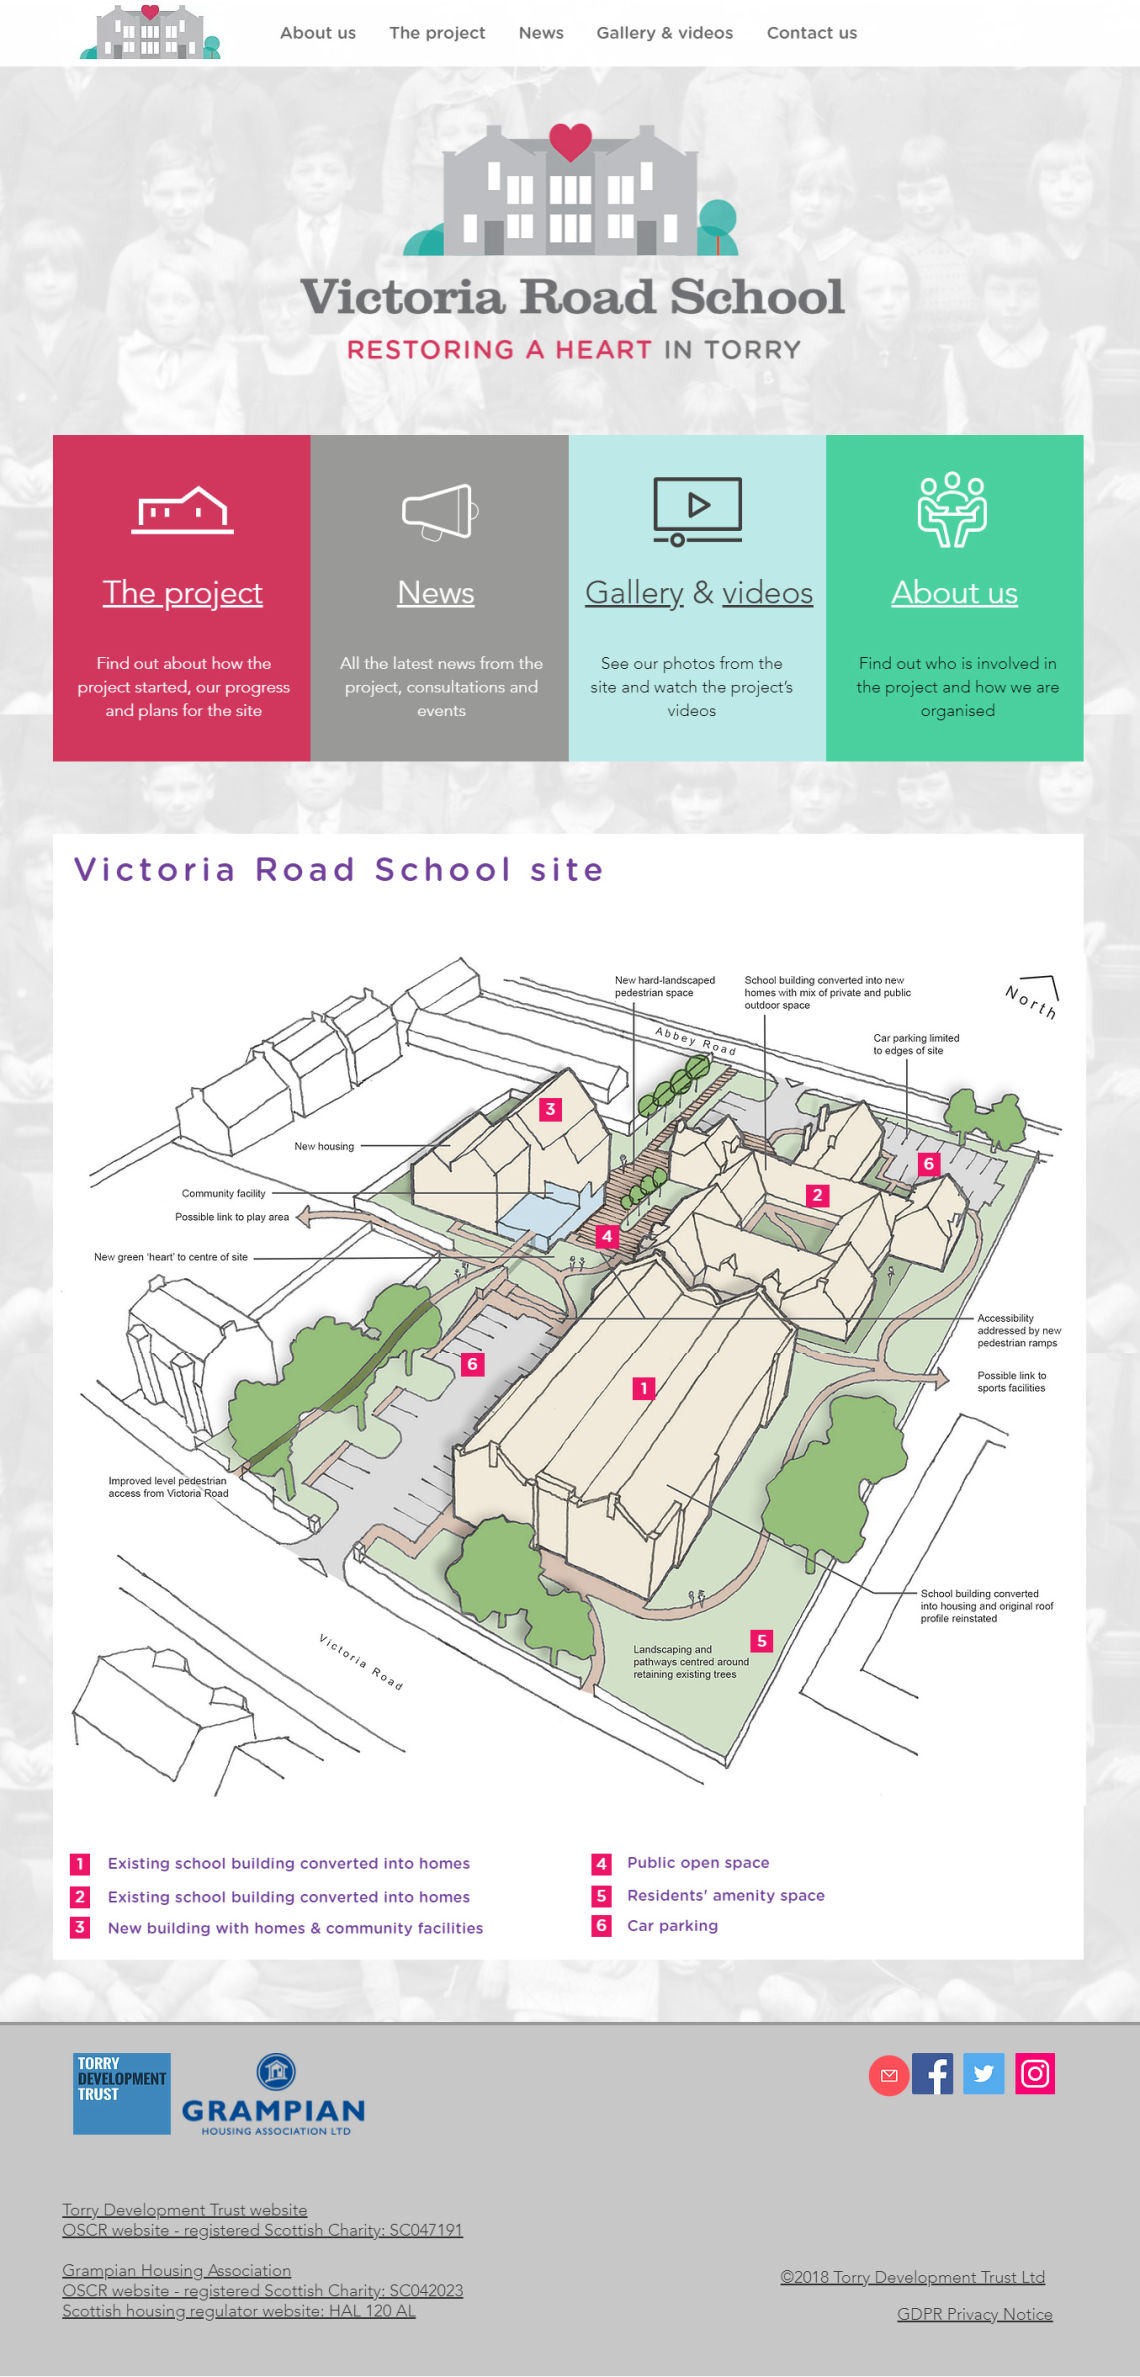 Homepage of the Victoria Road School regeneration project website extended by Doric Design